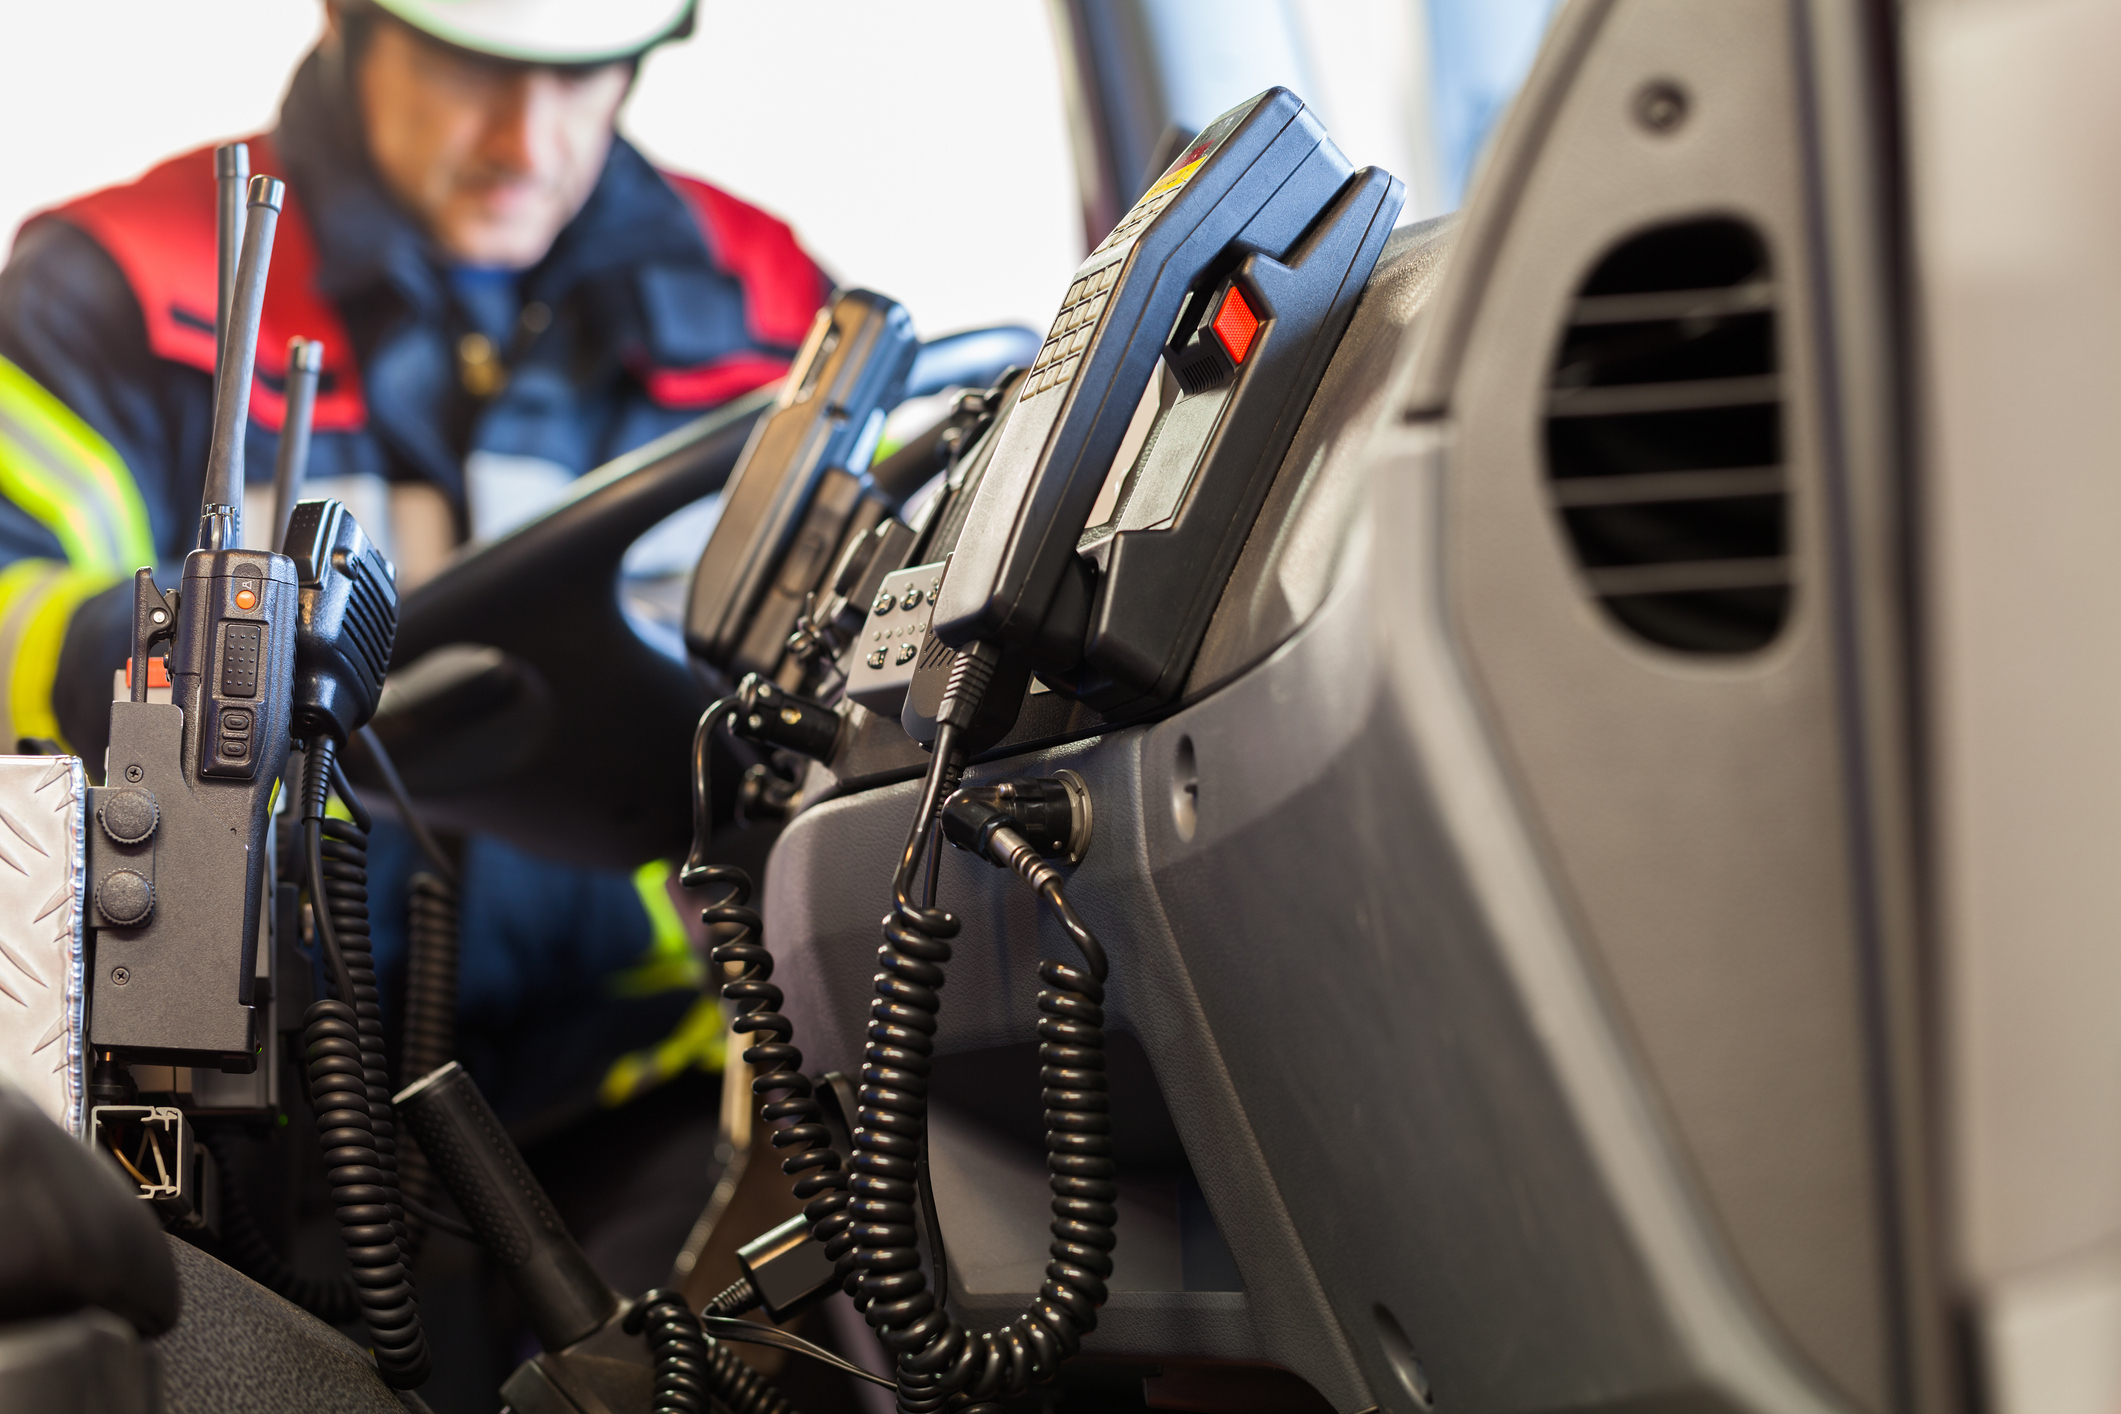 Photo of radios on a fire truck to illustrate how 5G will benefit public safety